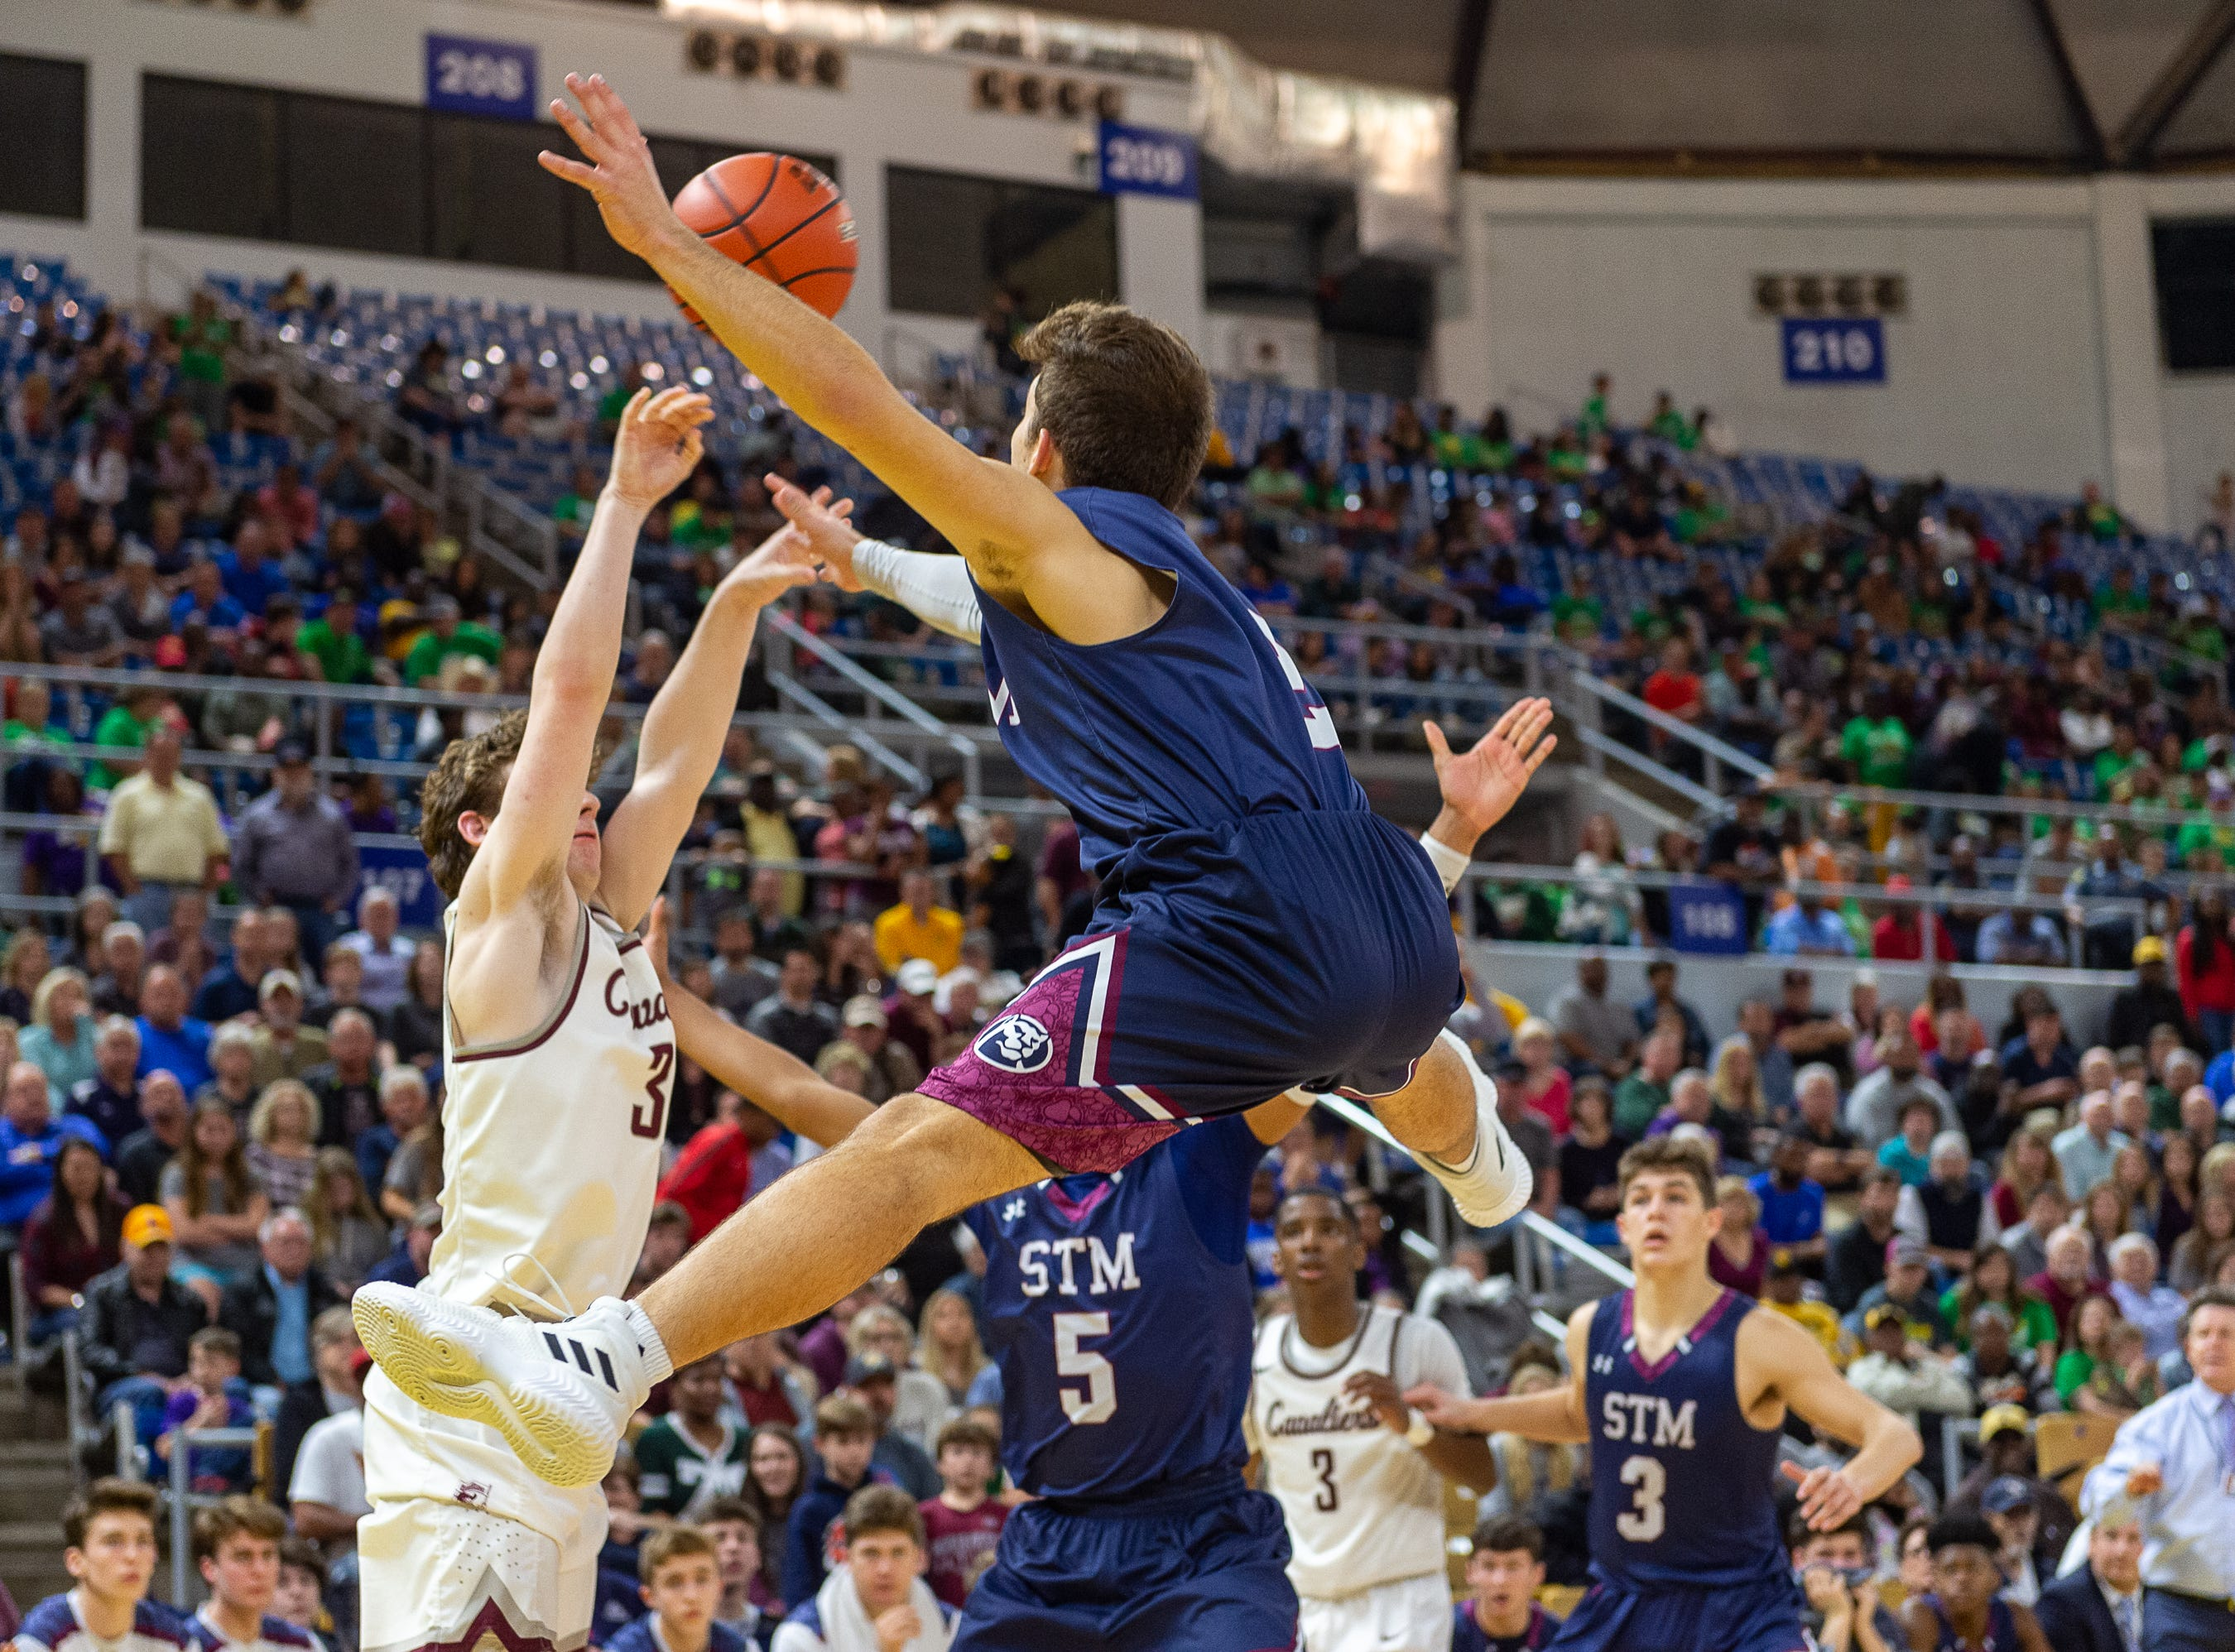 Grant Arceneaux on defense as The STM Cougars beat DeLaSalle in double overtime to win the Allstate Sugar Bowl/LHSAA Boys' Marsh Madness Div II State Championship. Saturday, March 9, 2019.